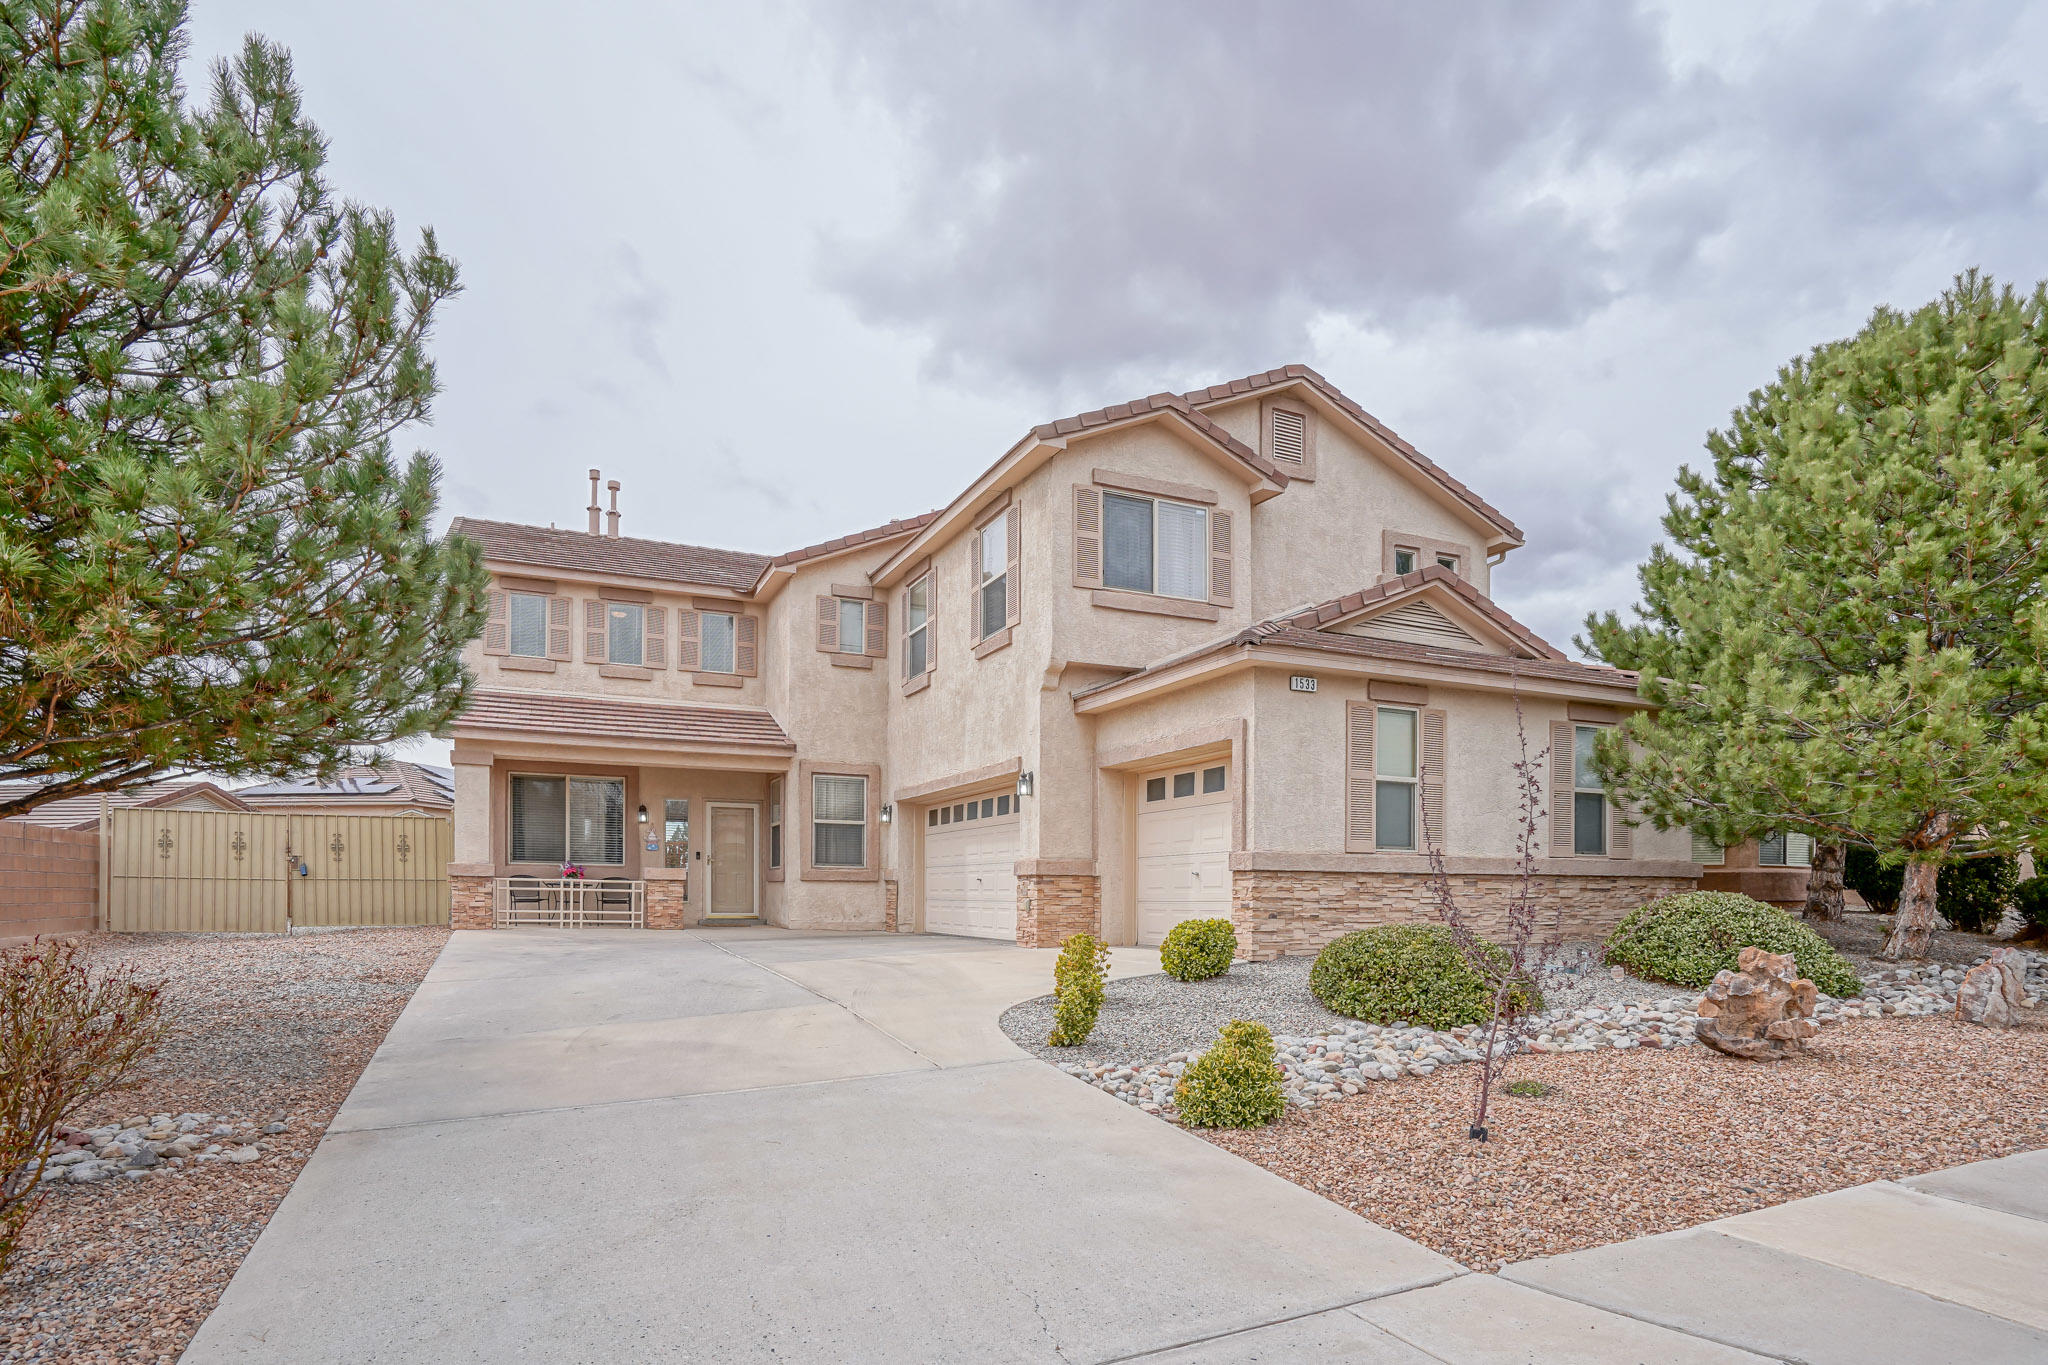 Nestled in the Cabezon Neighborhood in Rio Rancho, this desirable DR Horton home is one that you don't want to miss out on. This home offers a spacious, open floor plan that is flooded with natural light from the huge living room windows. Featuring: 4 bedrooms, 3 bathrooms, a large loft, and a three-car garage, providing plenty of space to grow and expand your life. The kitchen offers granite countertops, a double oven, and an island for your guests to gather around. The great room pulls you in, and you'll love gathering around the log fireplace when the weather gets cooler. An oversized master bedroom is a perfect place to relax and enjoy your jetted tub! Outside, you'll find your personal oasis with an extended covered patio and an above-ground pool with raised pool deck. Come see today!